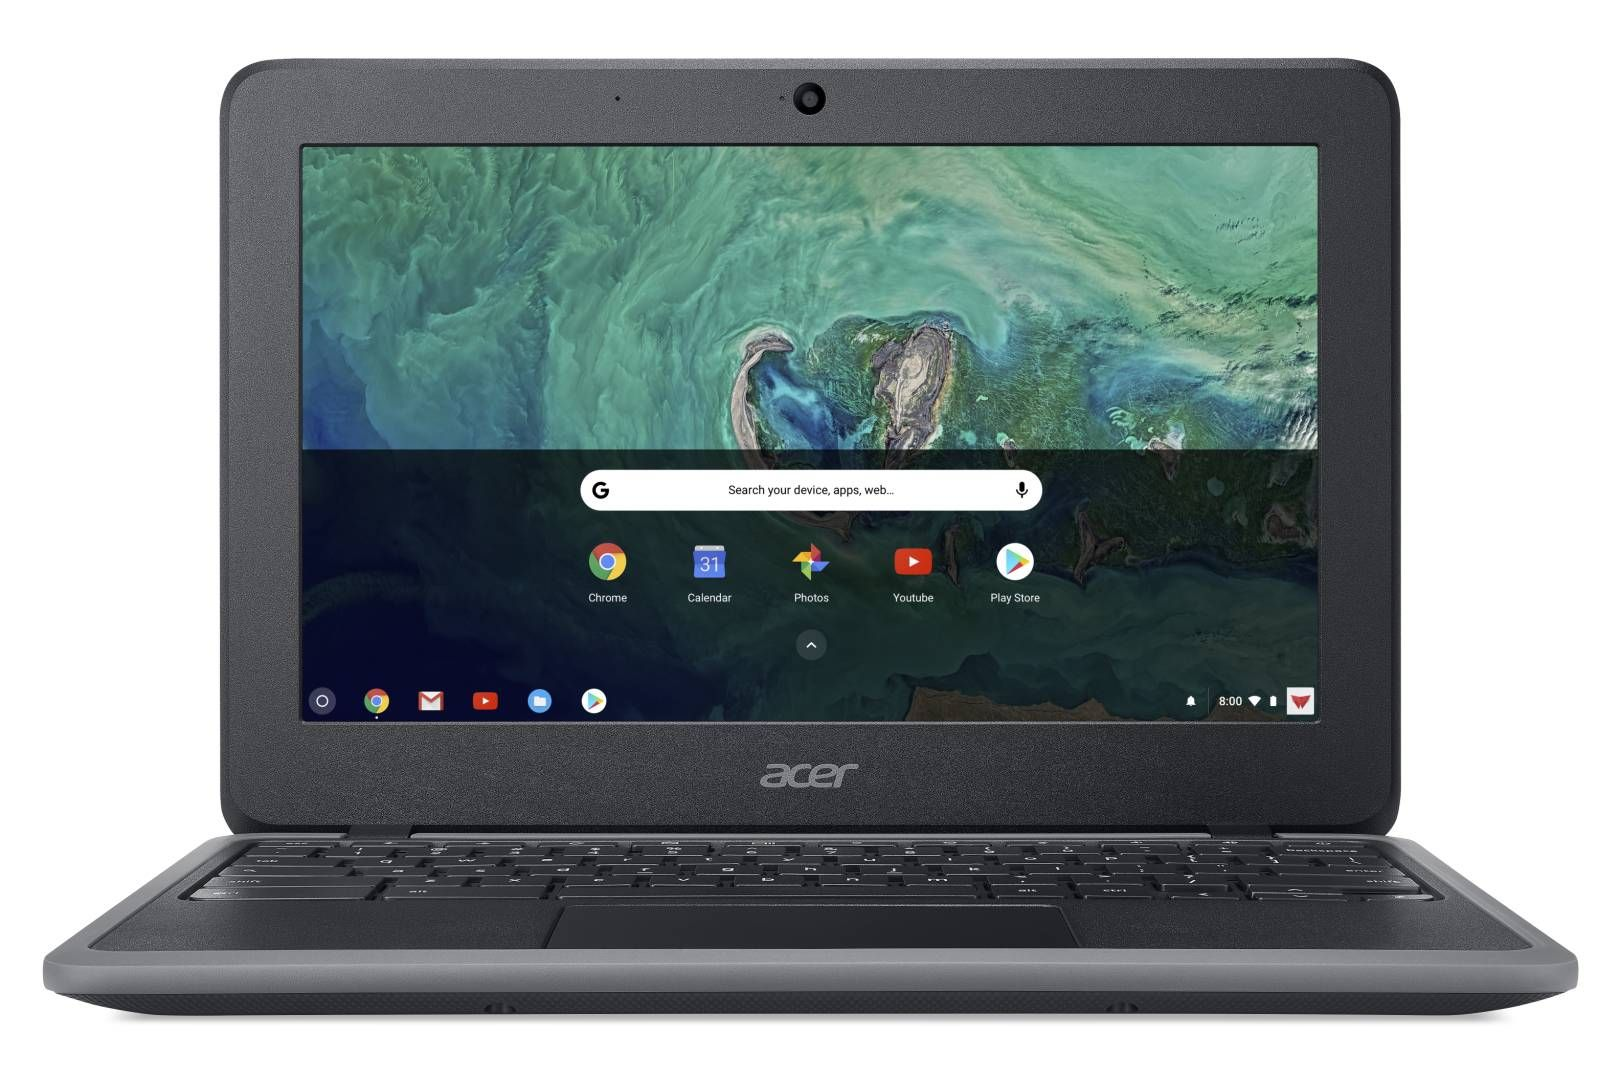 Acer C732T 11.6in N3350 4GB Chromebook